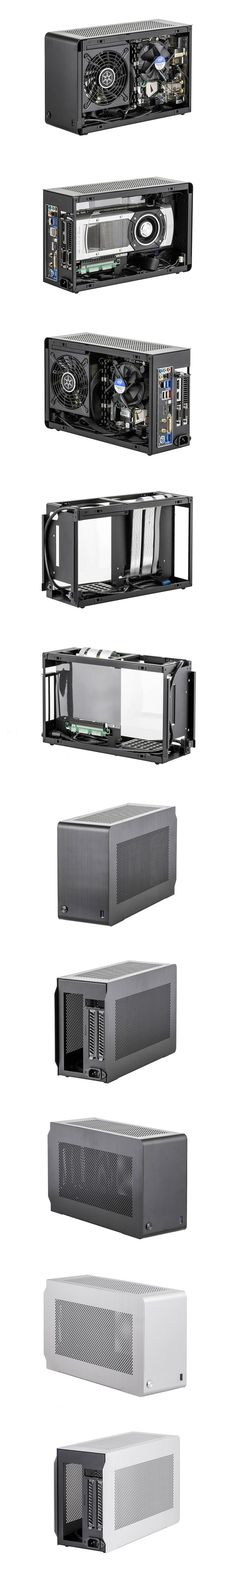 DAN Cases A4-SFX - The World's Smallest Gaming Tower Case